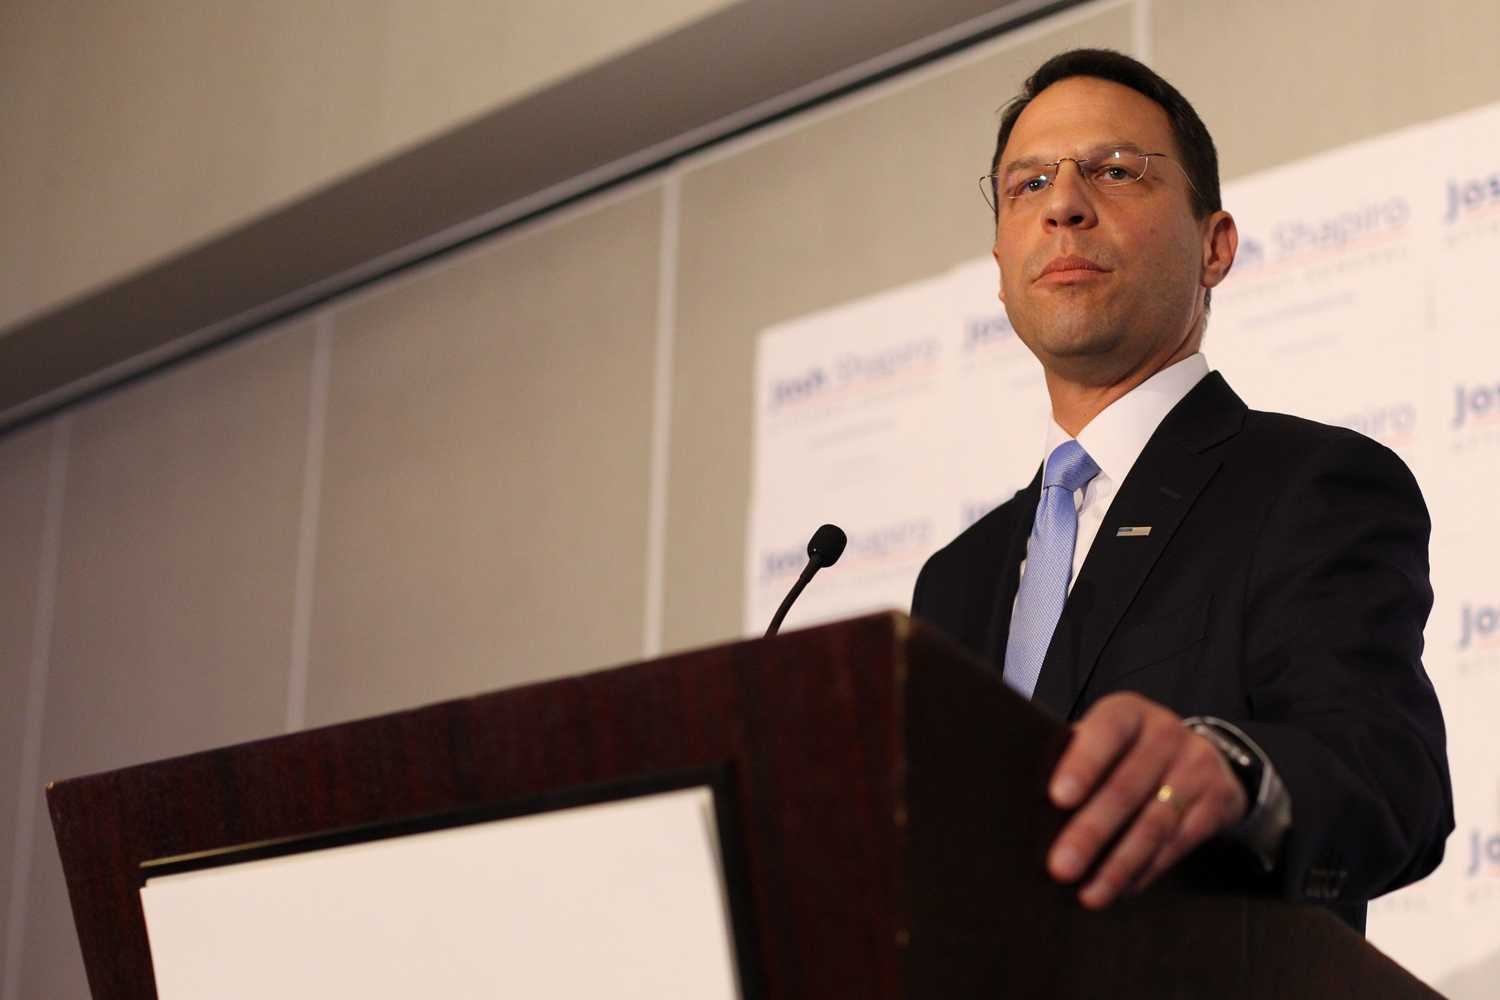 Pennsylvania Attorney General Joshua Shapiro discusses major areas of concern at the presentation of the 28th annual campus safety report Wednesday. (Margo Reed/Philadelphia Inquirer/TNS)